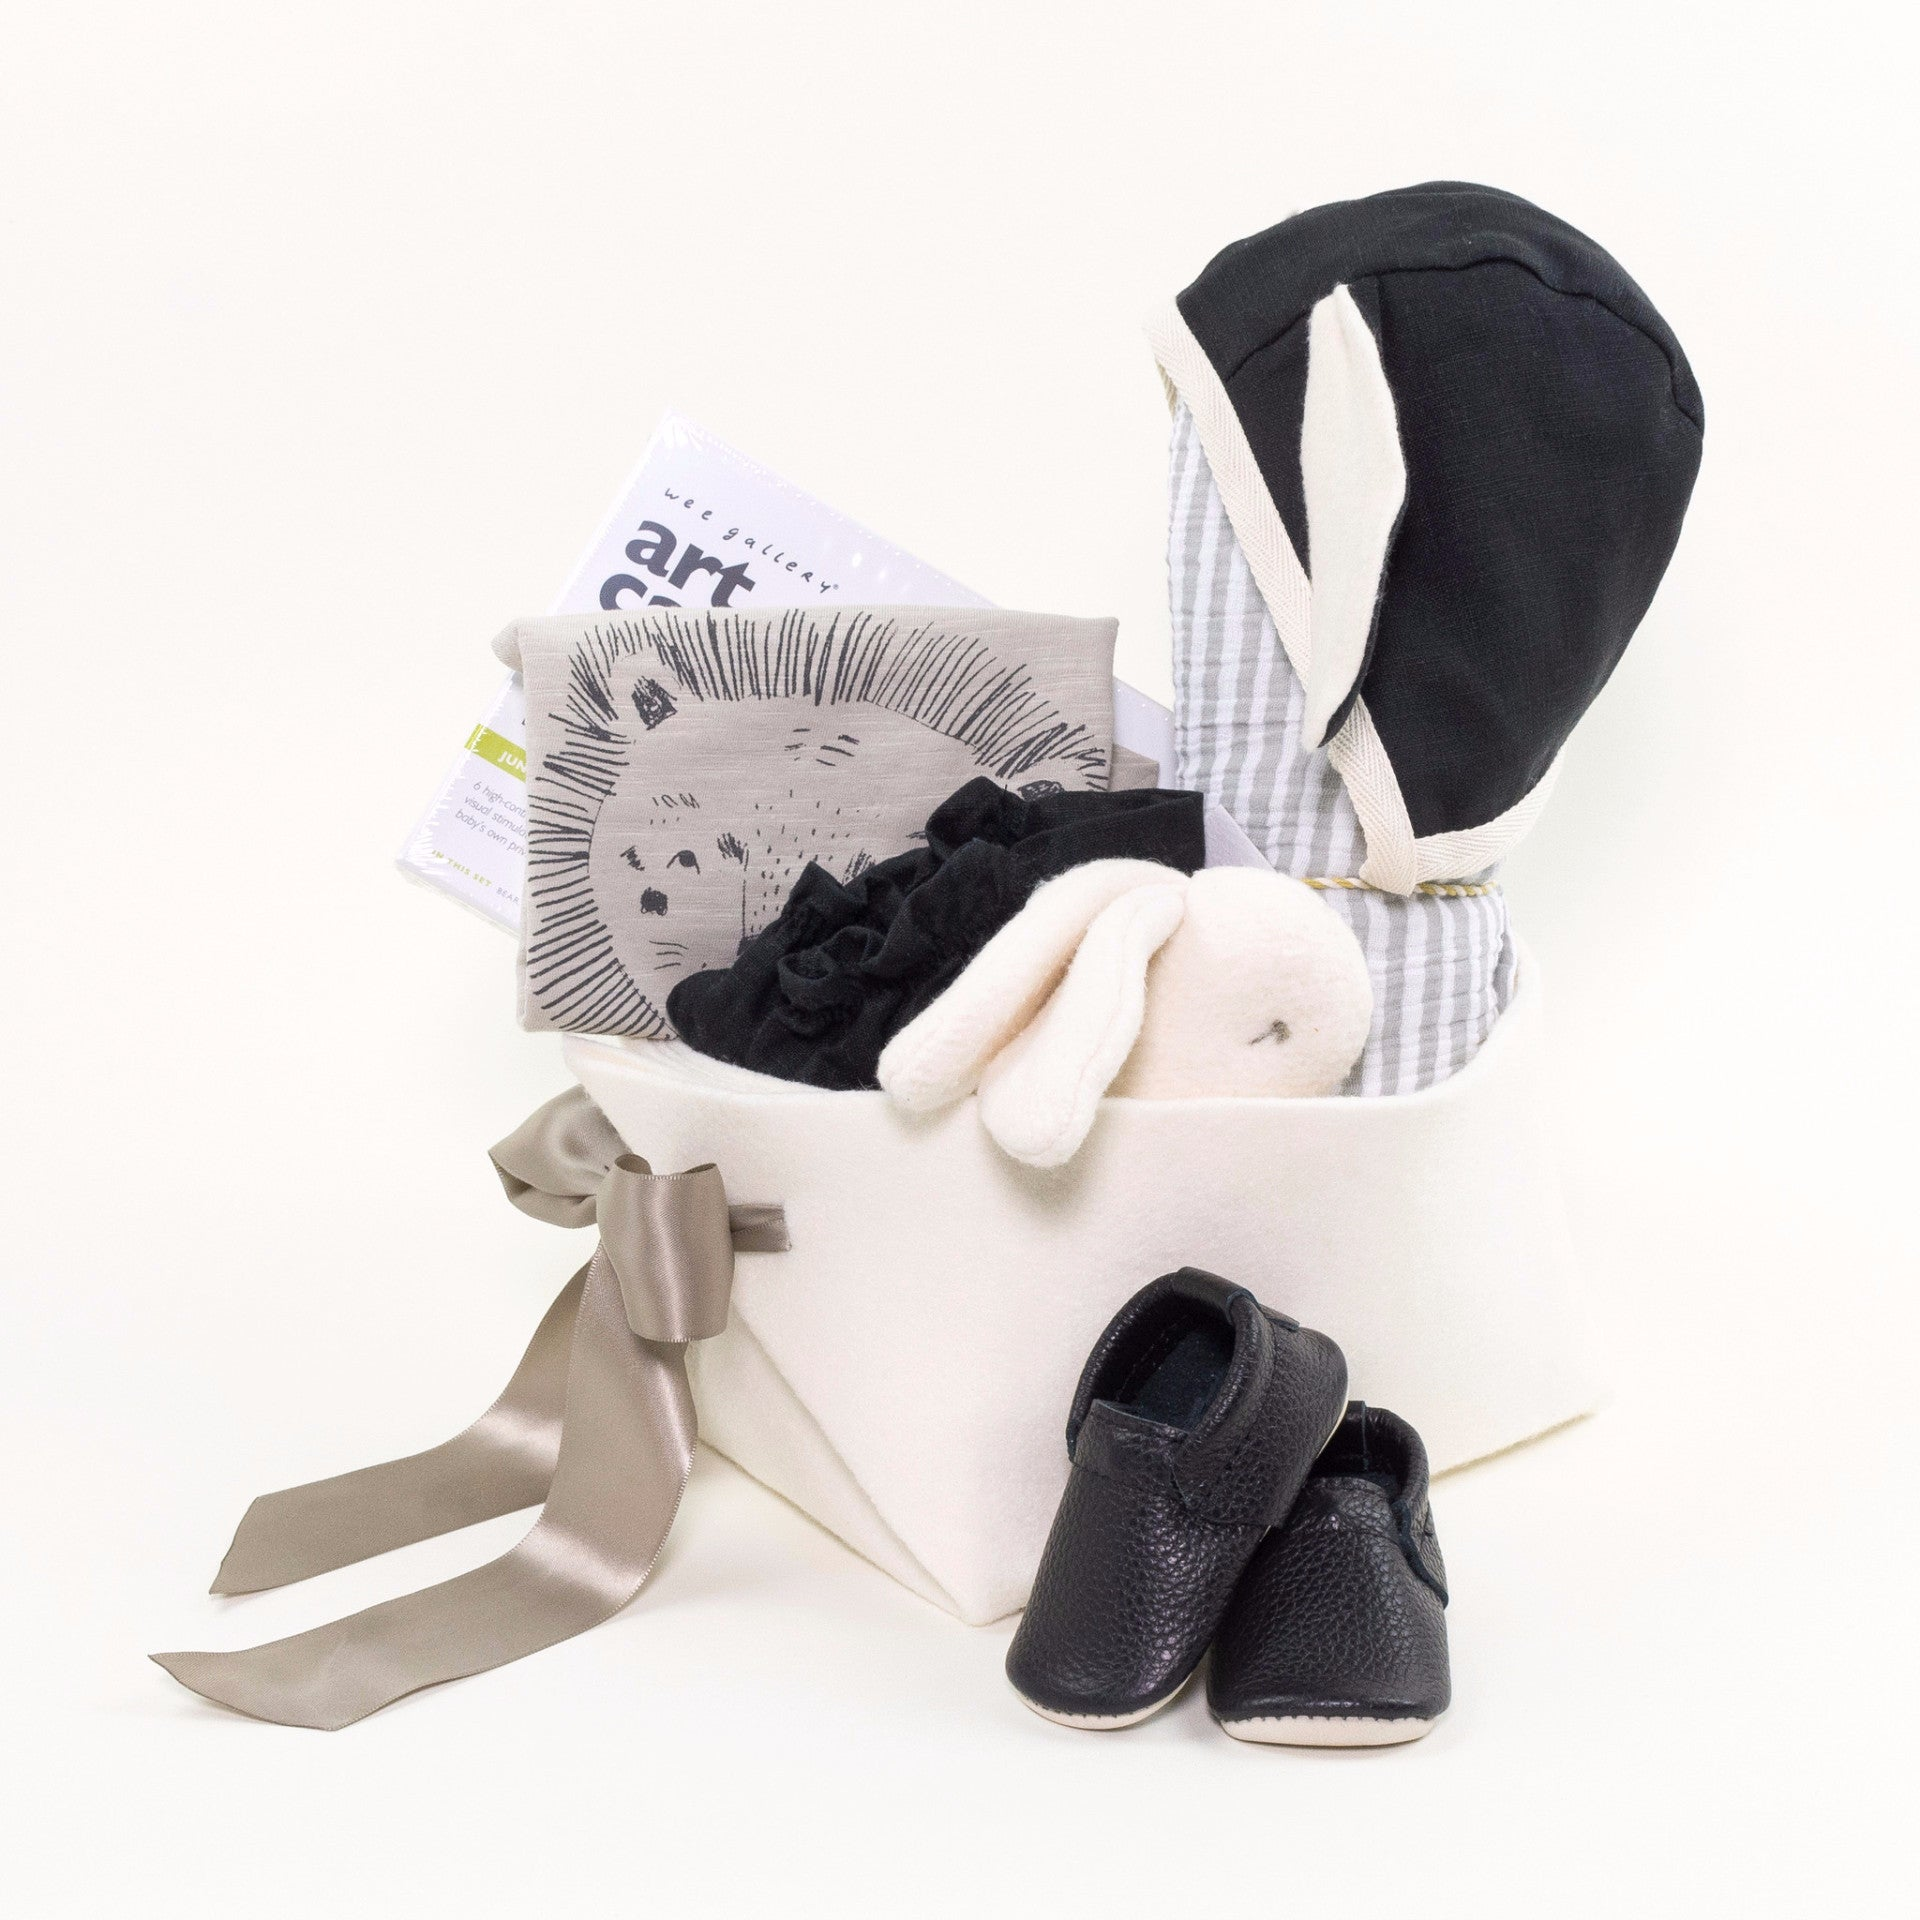 Luxury Baby Gift Basket at Bonjour Baby Baskets